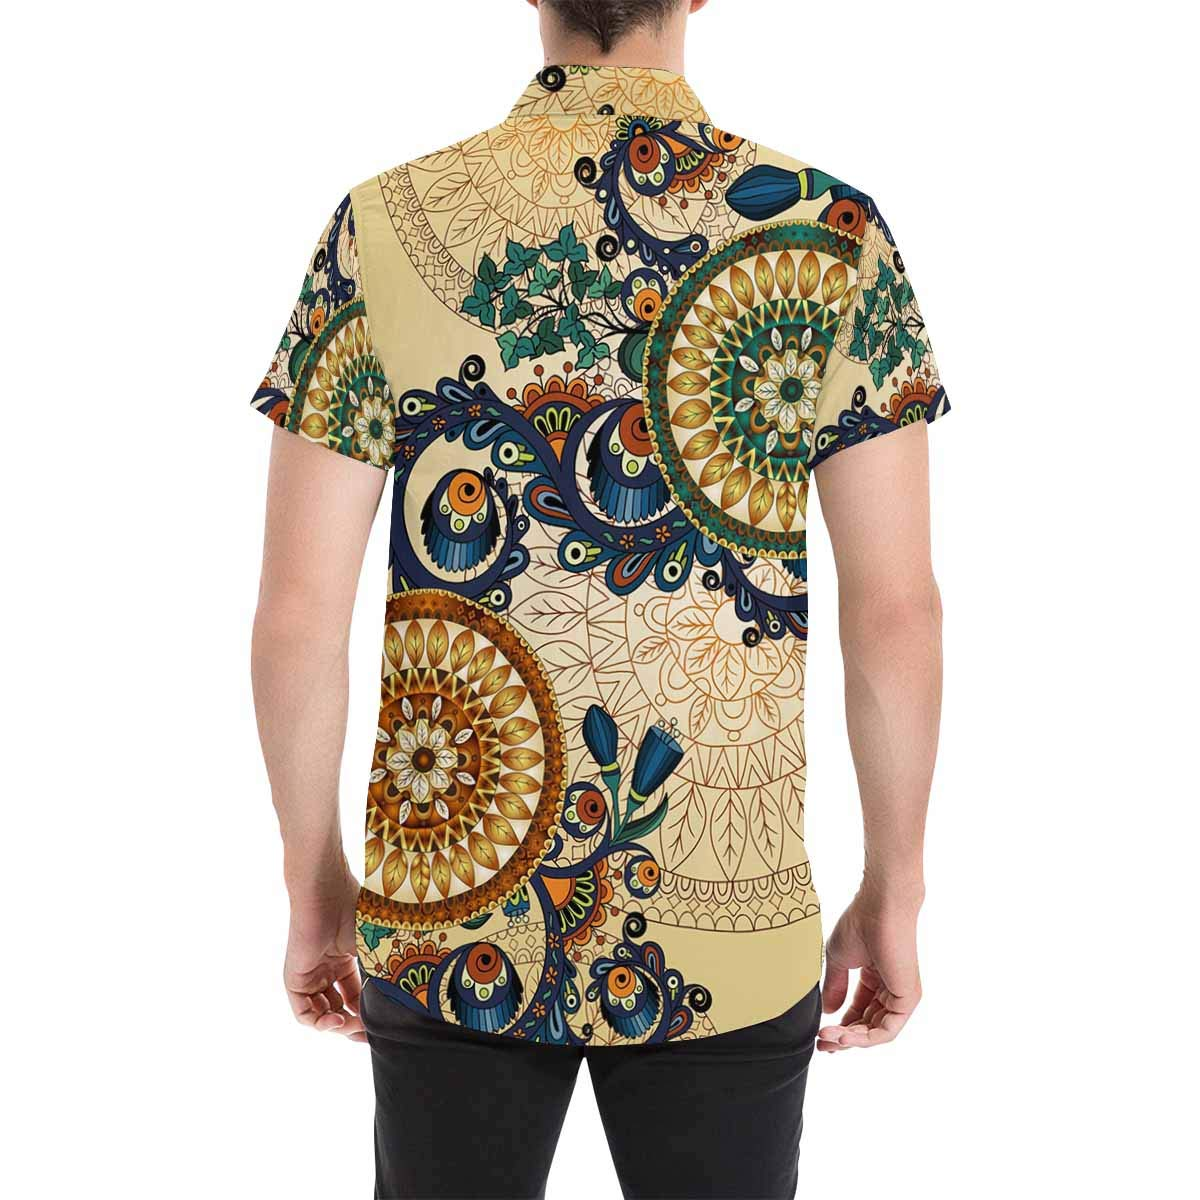 InterestPrint Button Down T Shirts Paisley Floral Lace with Cucumbers Button Down Shirts Short Sleeve